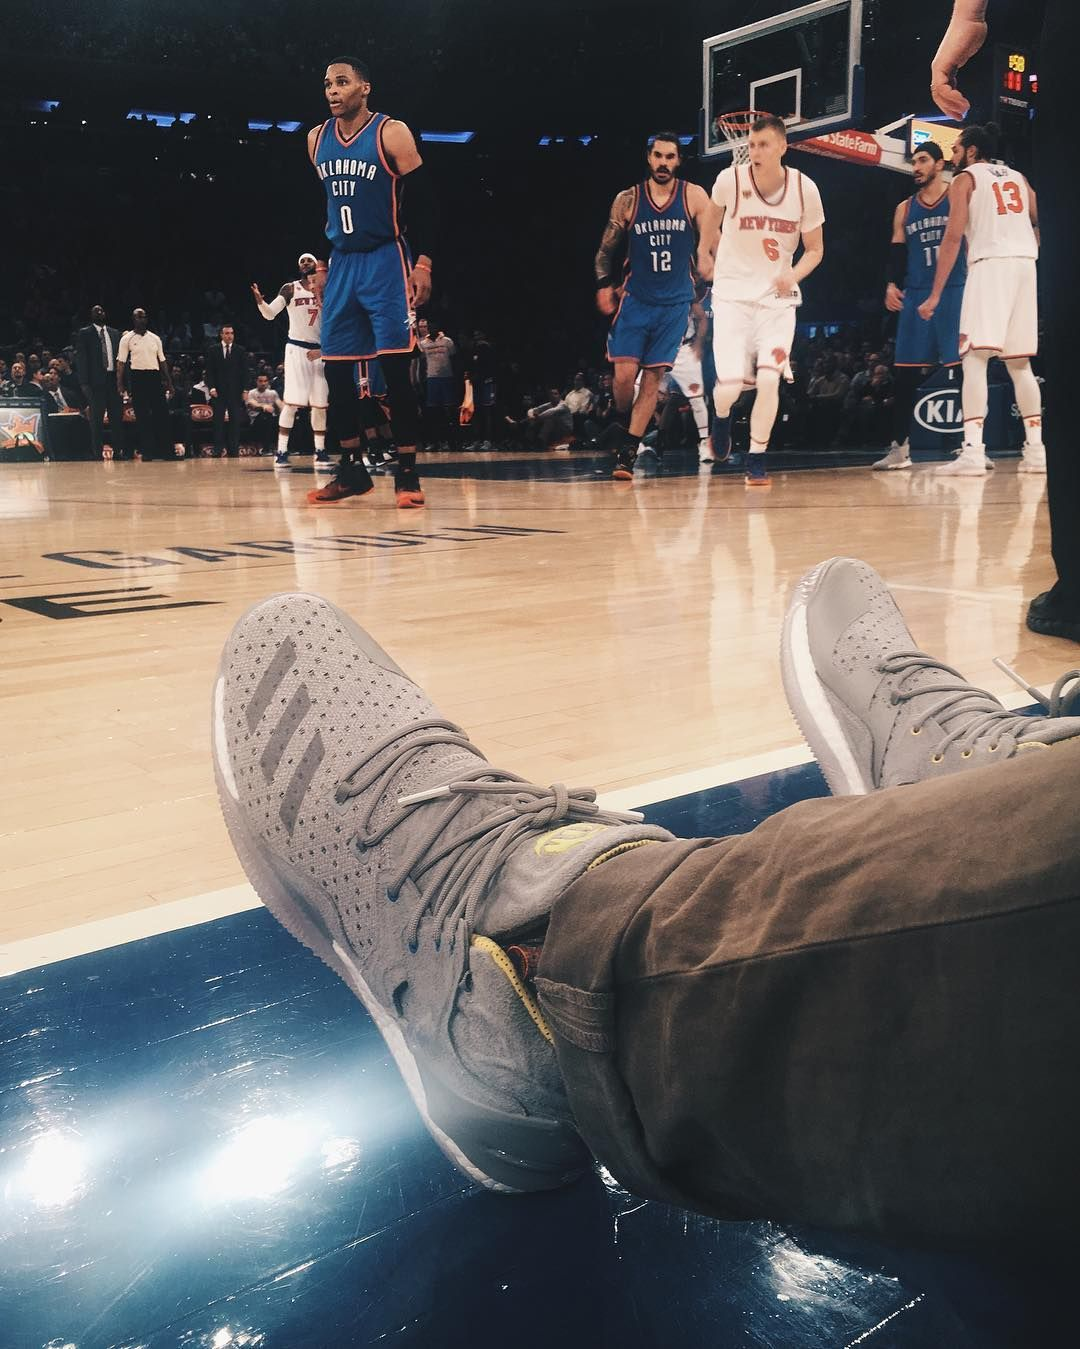 finest selection f5130 34bbb The Sneakersnstuff x adidas Consortium D Rose 7 PK is now available online.  Here worn by erikfagerlind at the Knicks game earlier tonight at the  Garden.